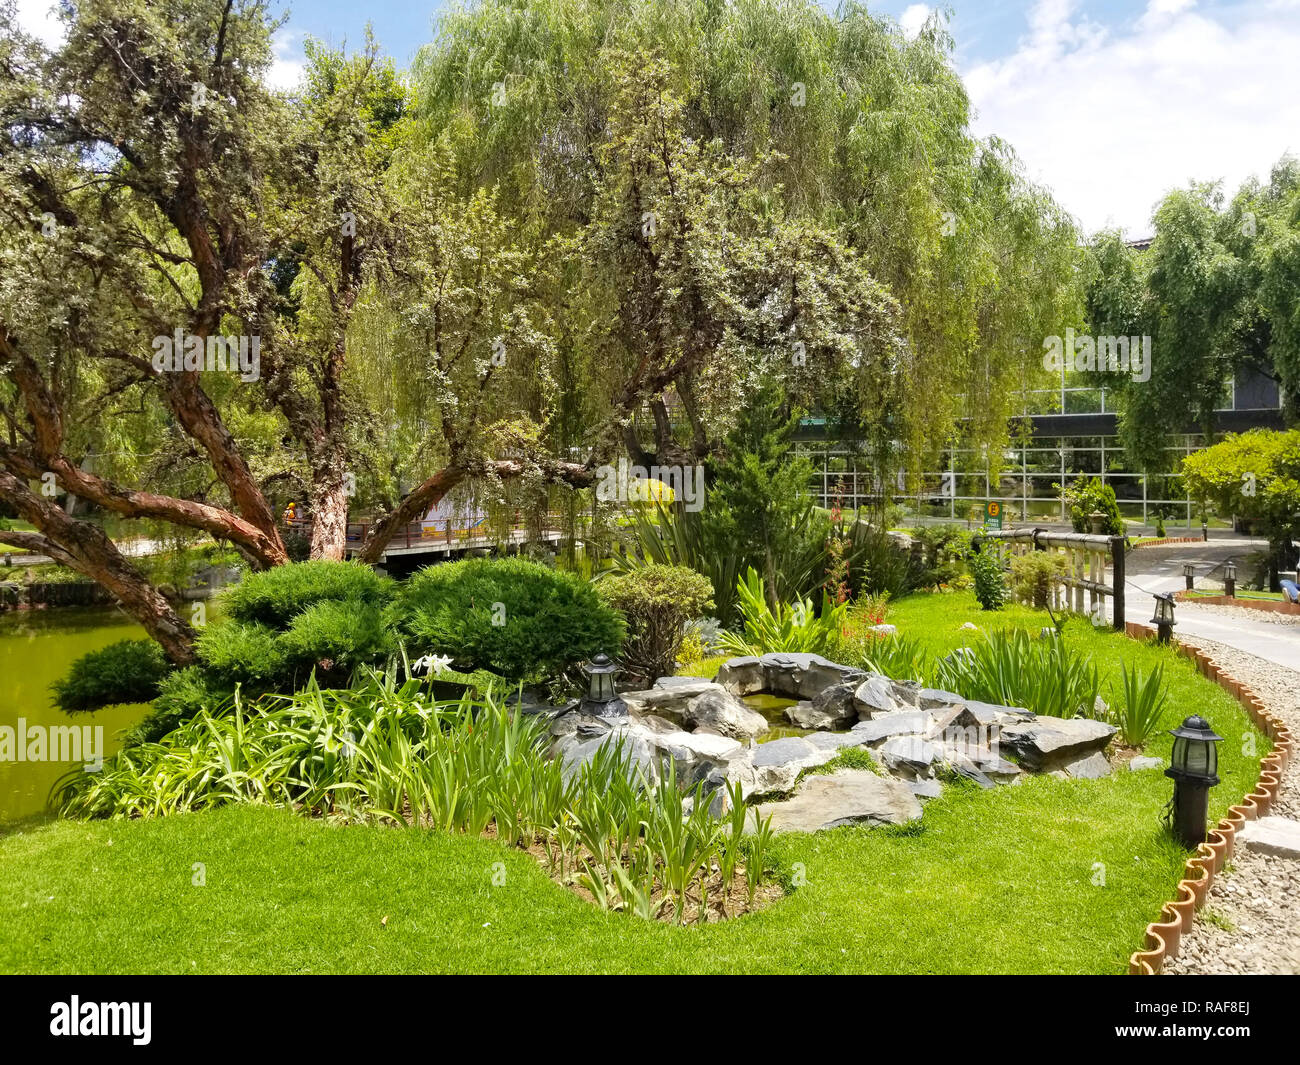 Japanese garden trees during a summer day Stock Photo